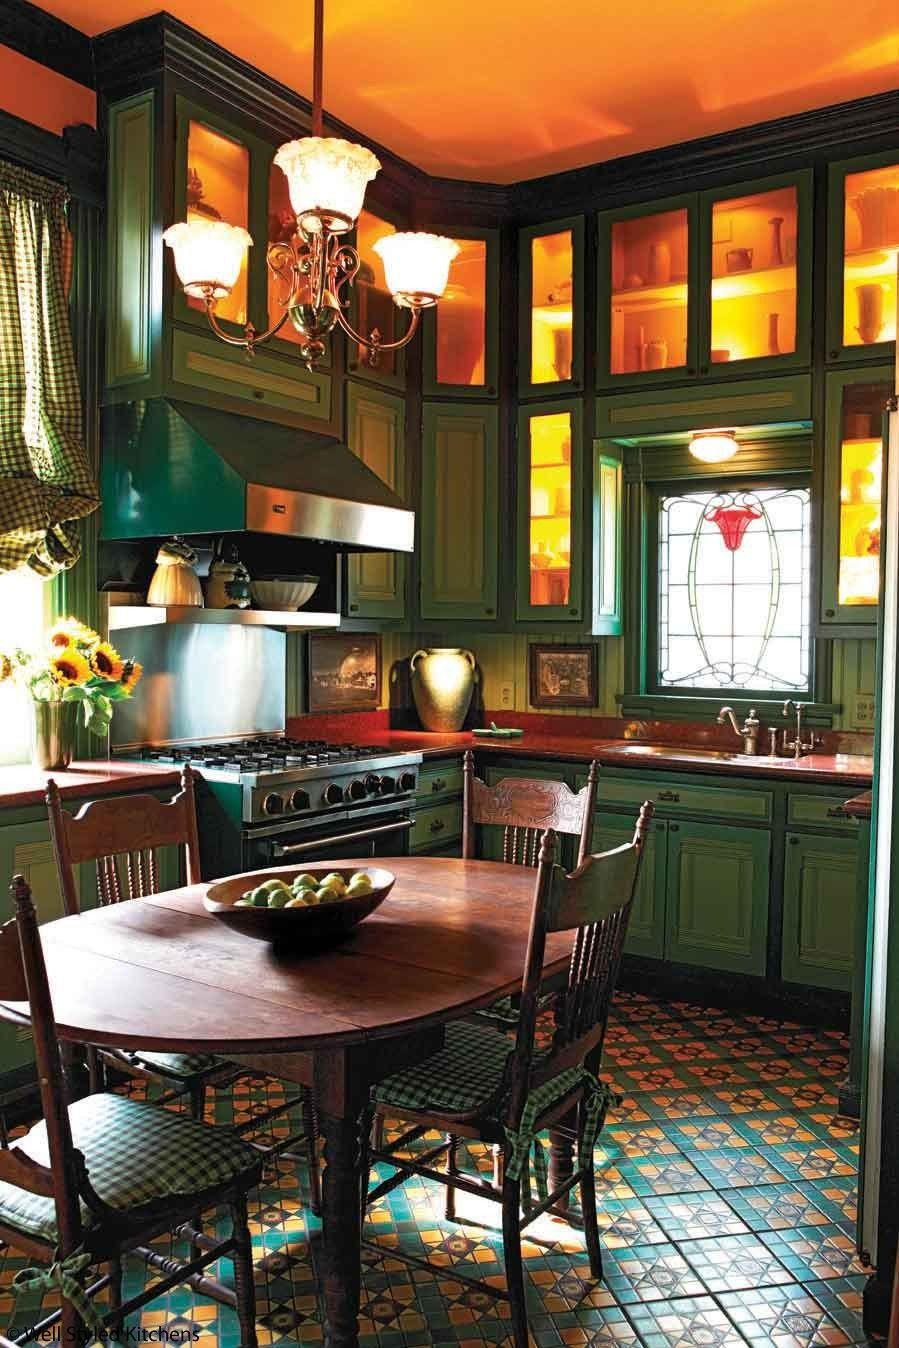 Historic Victorian Kitchen Cabinets An Important Element: Victorian Kitchen. I Would Paint A Brighter Color For The